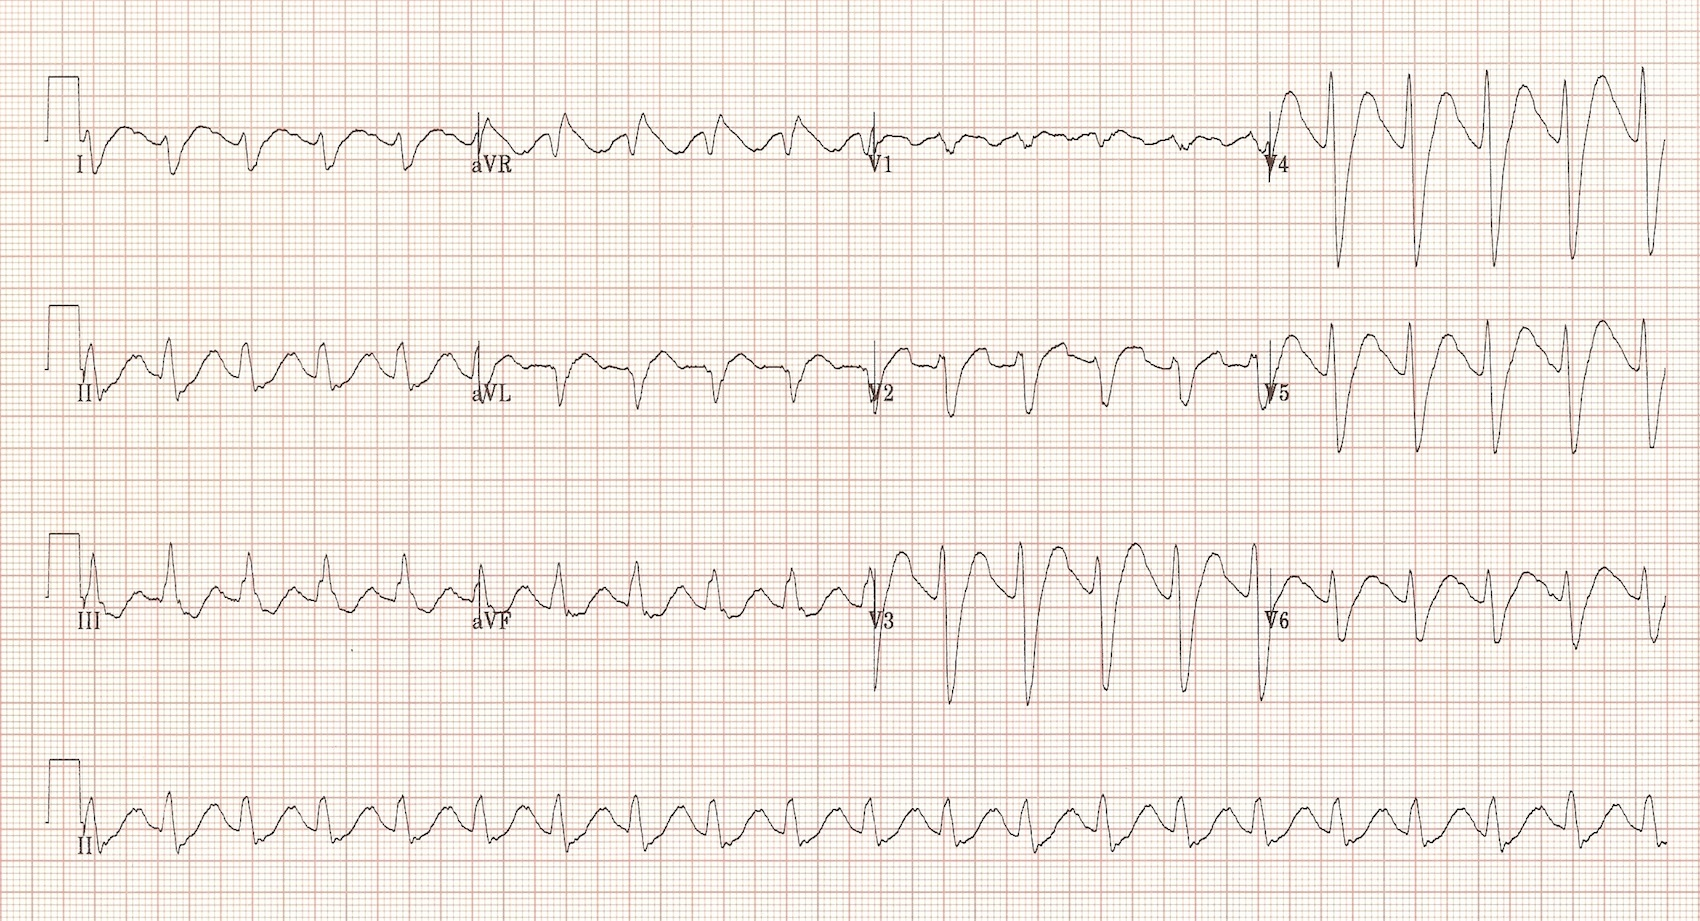 EKG with feature of a TCA overdose secondary to sodium channel blockade